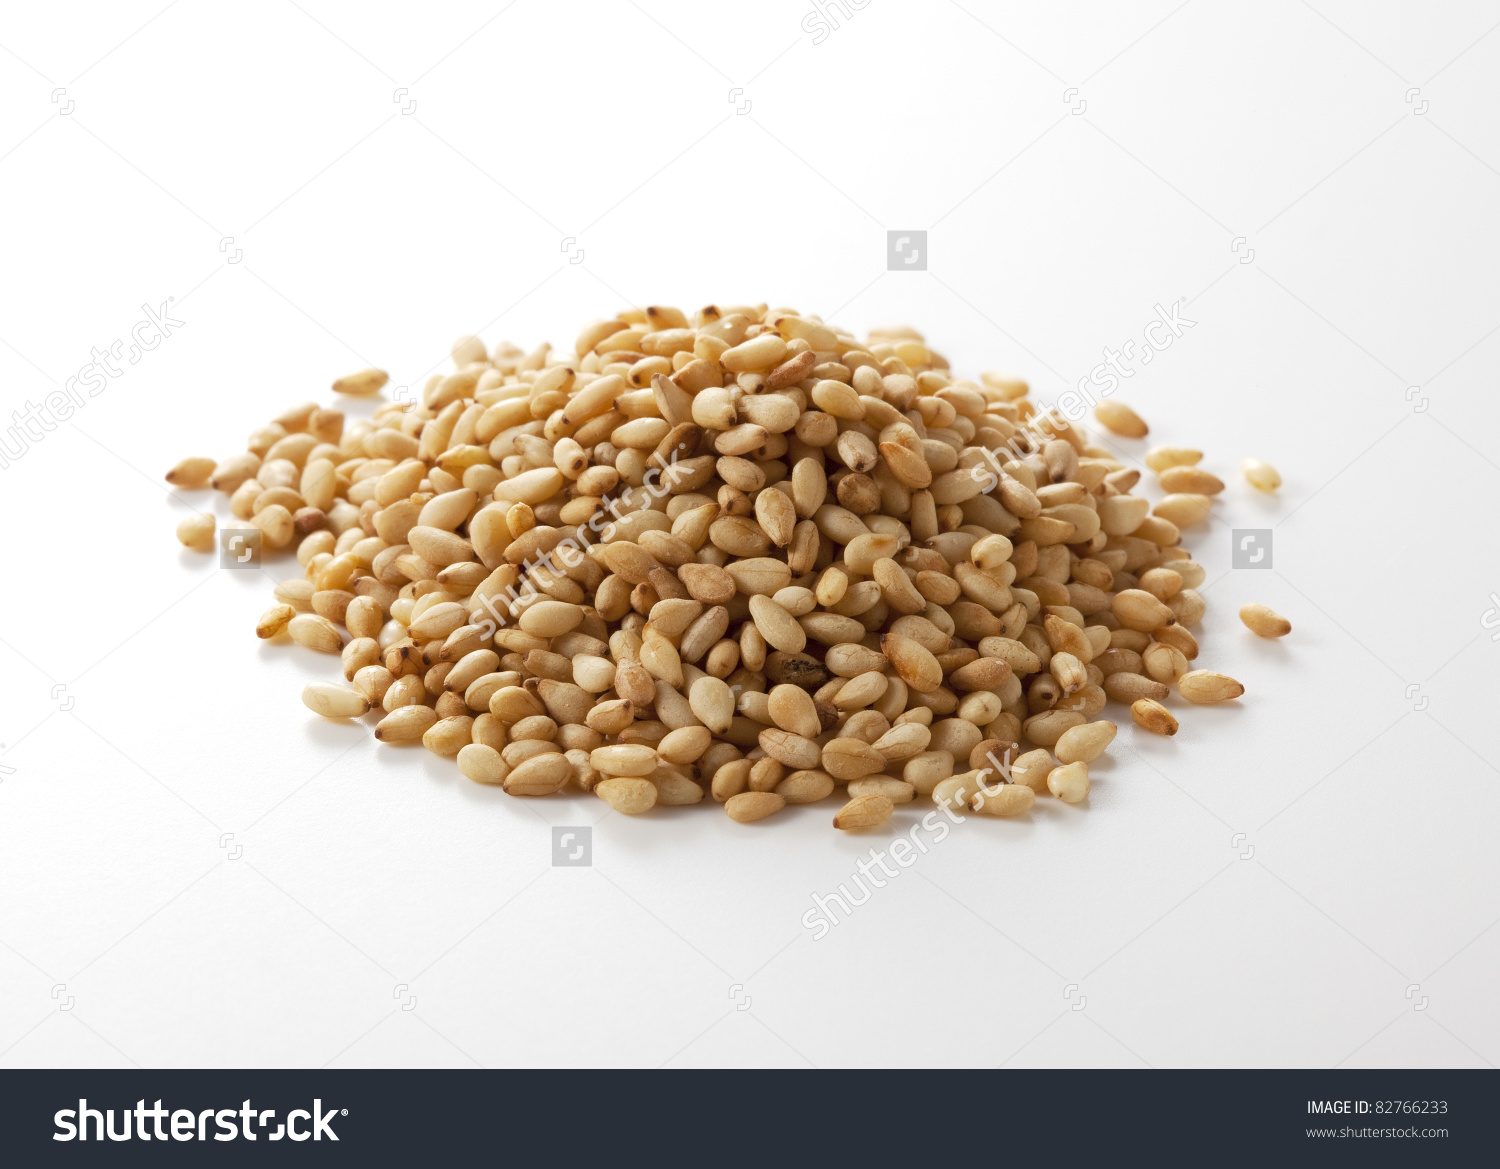 Sesame Seeds Isolated On White Background Stock Photo 82766233.